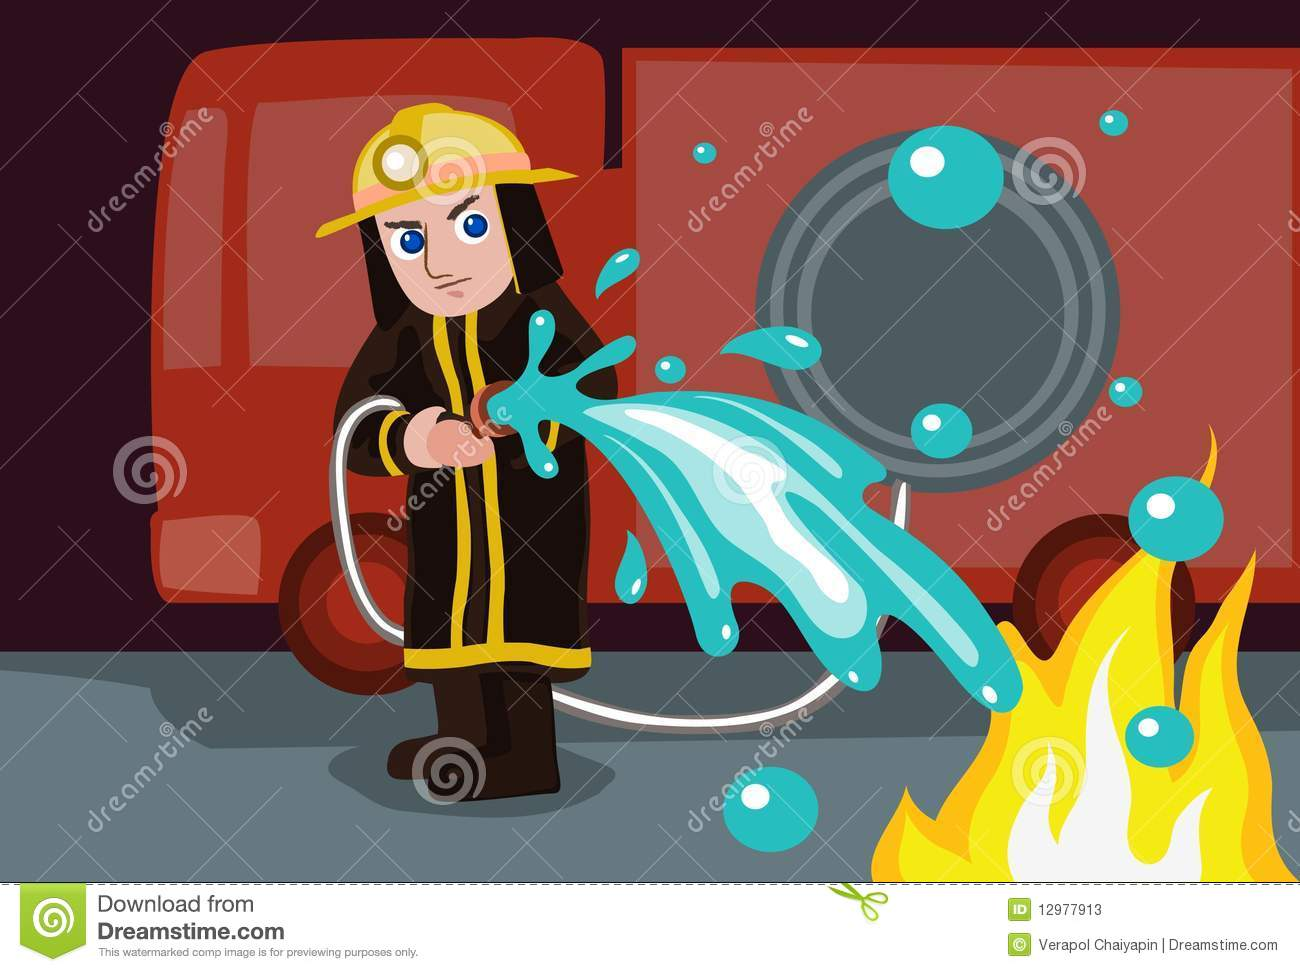 Water To Extinguish Fire Stock Illustrations U2013 59 Water To Extinguish Fire  Stock Illustrations, Vectors U0026 Clipart   Dreamstime